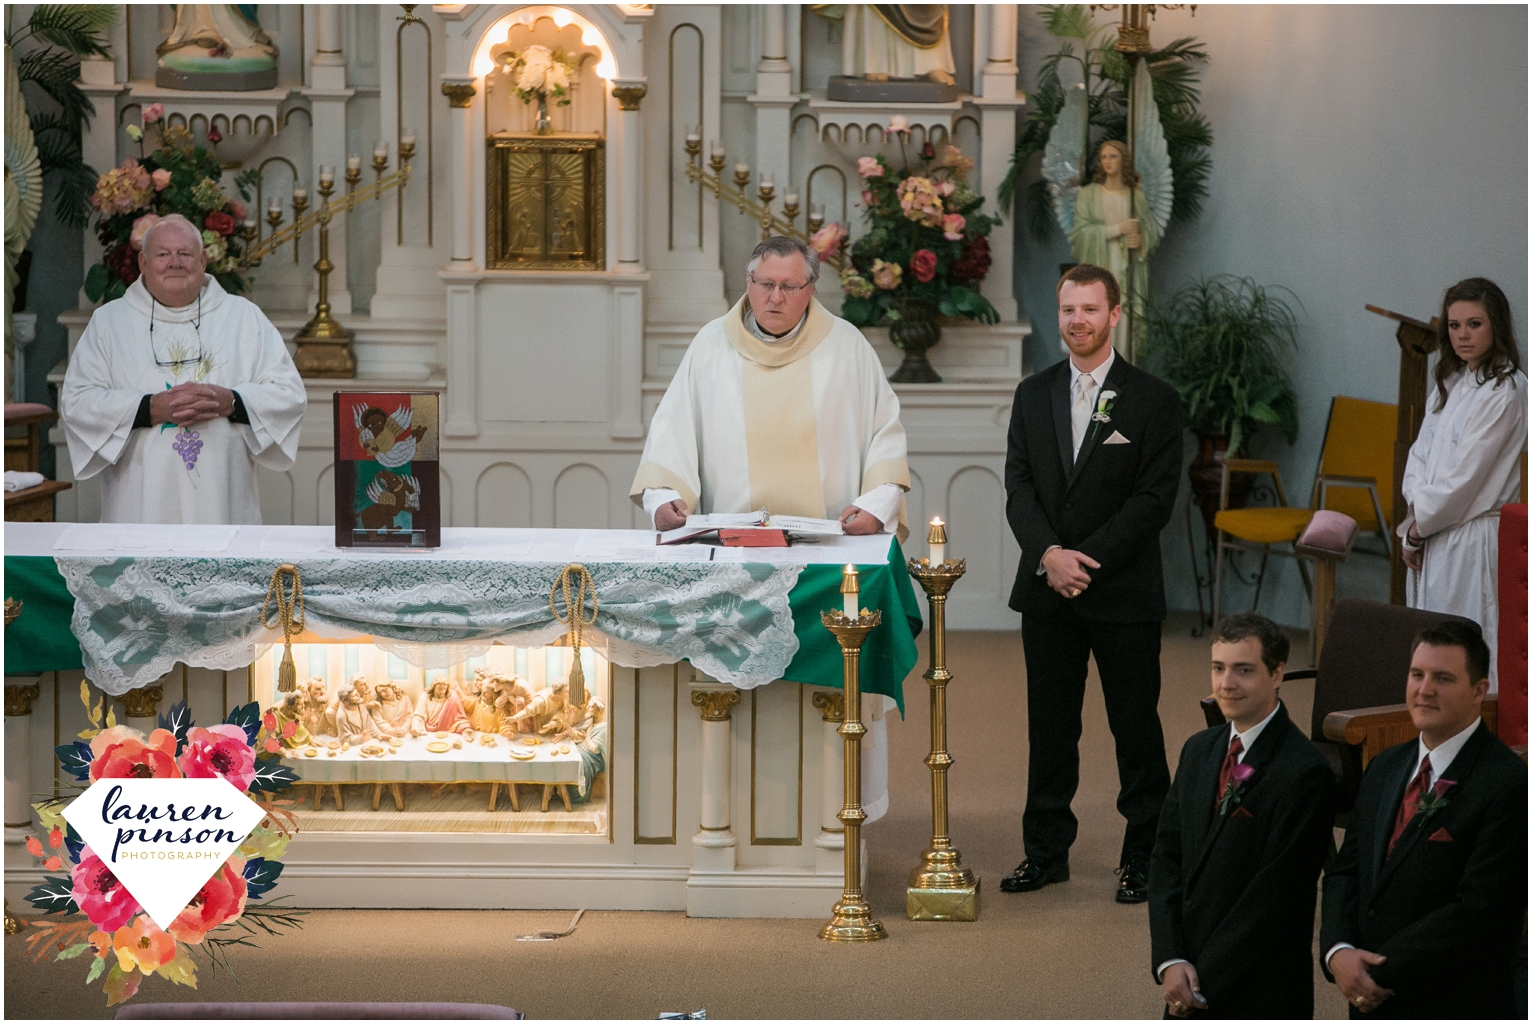 wichita-falls-wedding-photographer-OUR-Lady-queen-of-peace-catholic-wedding-the-forum-photography_0928.jpg